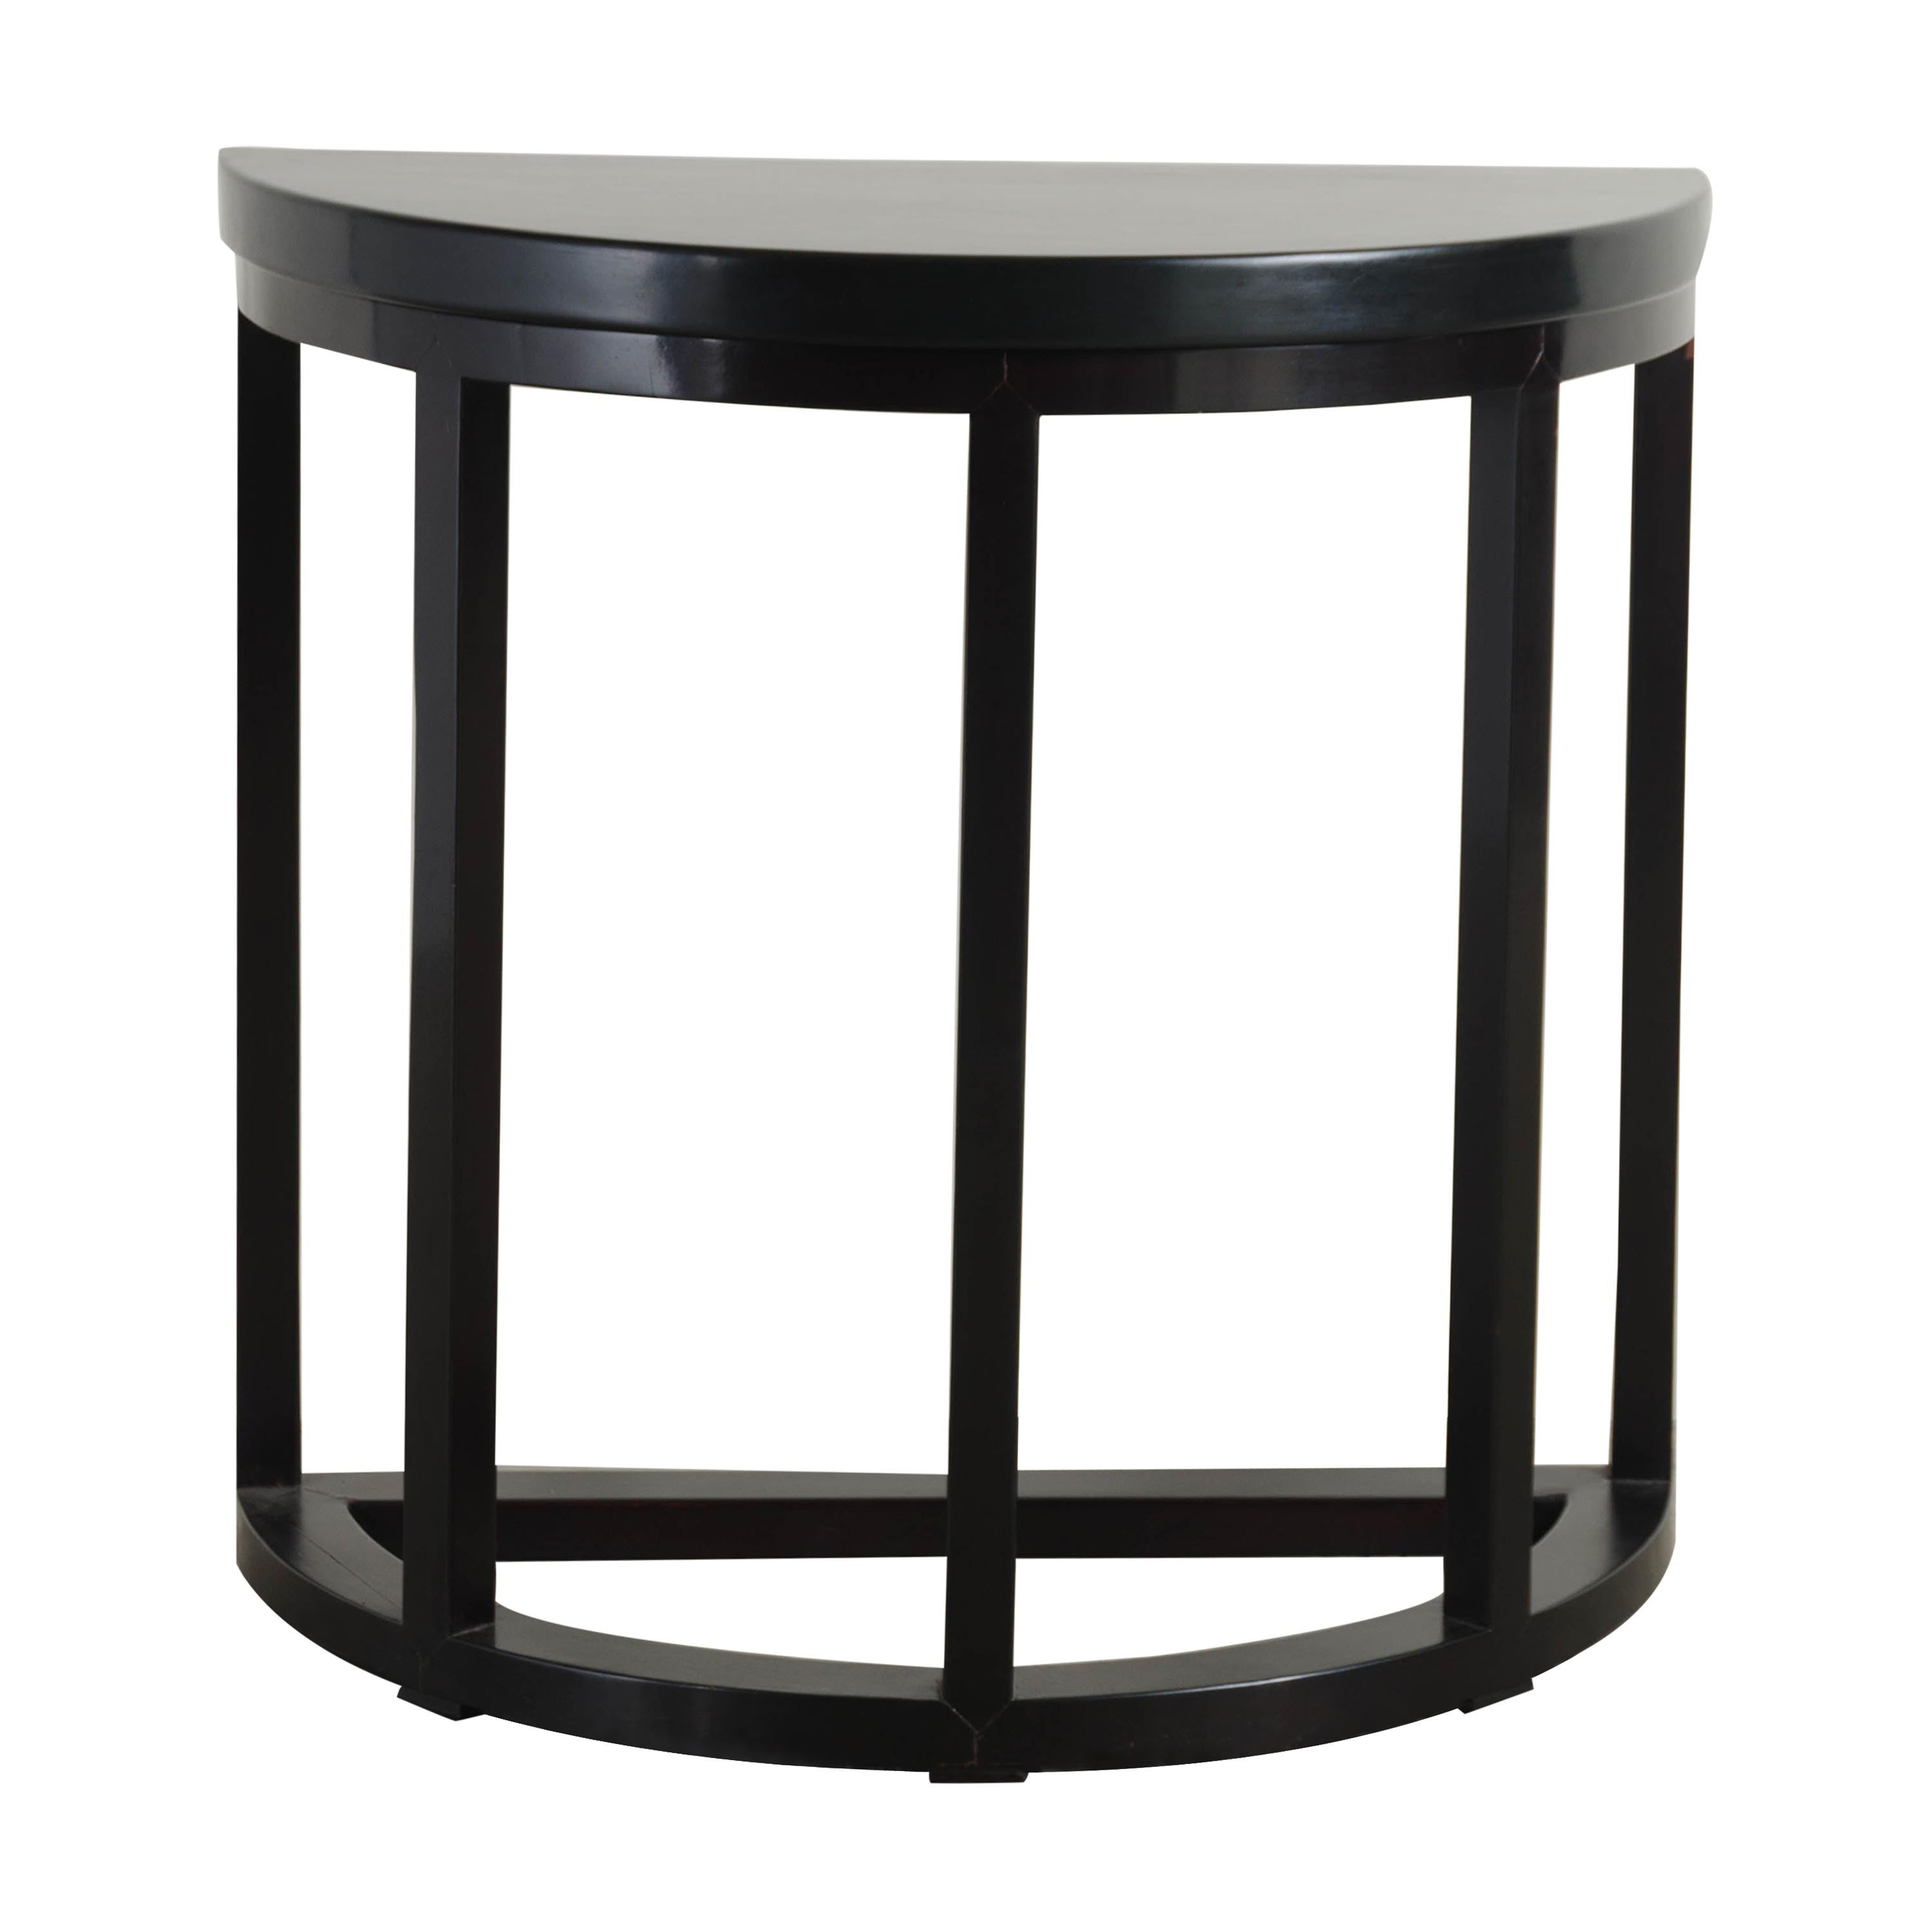 New And Custom Demi-lune Tables